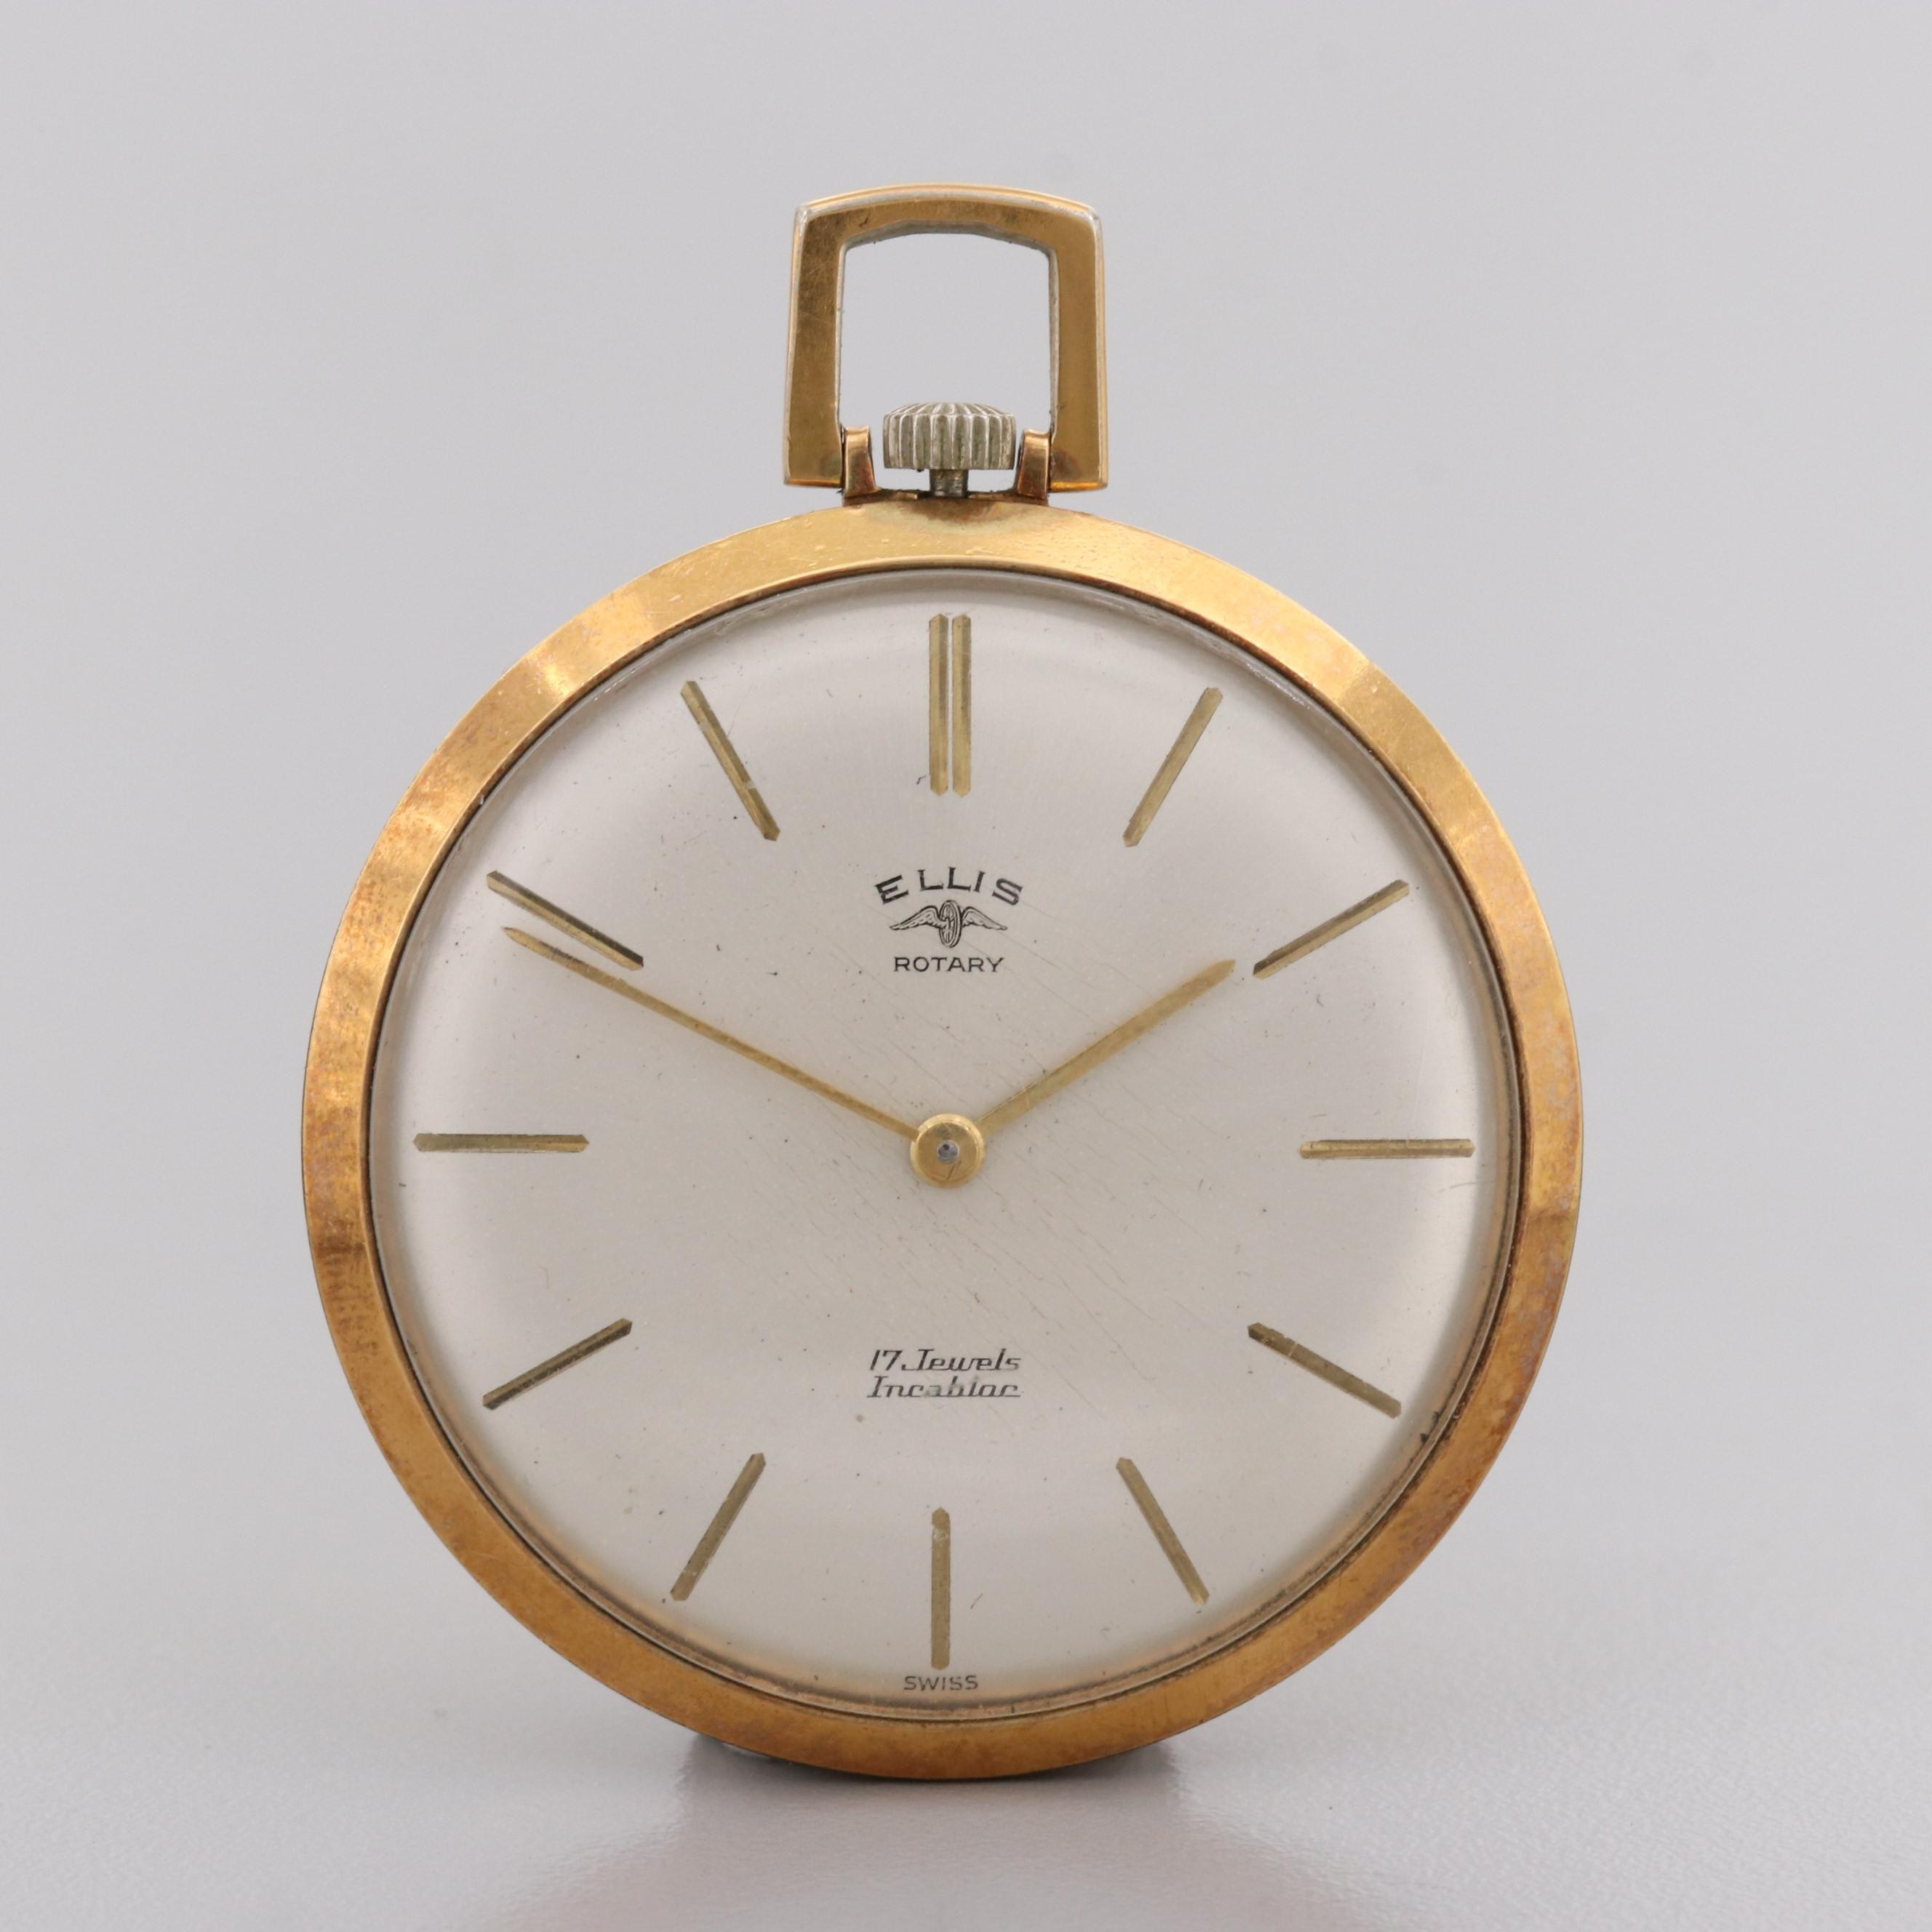 Vintage Ellis Rotary Gold-Tone Open Face Pocket Watch